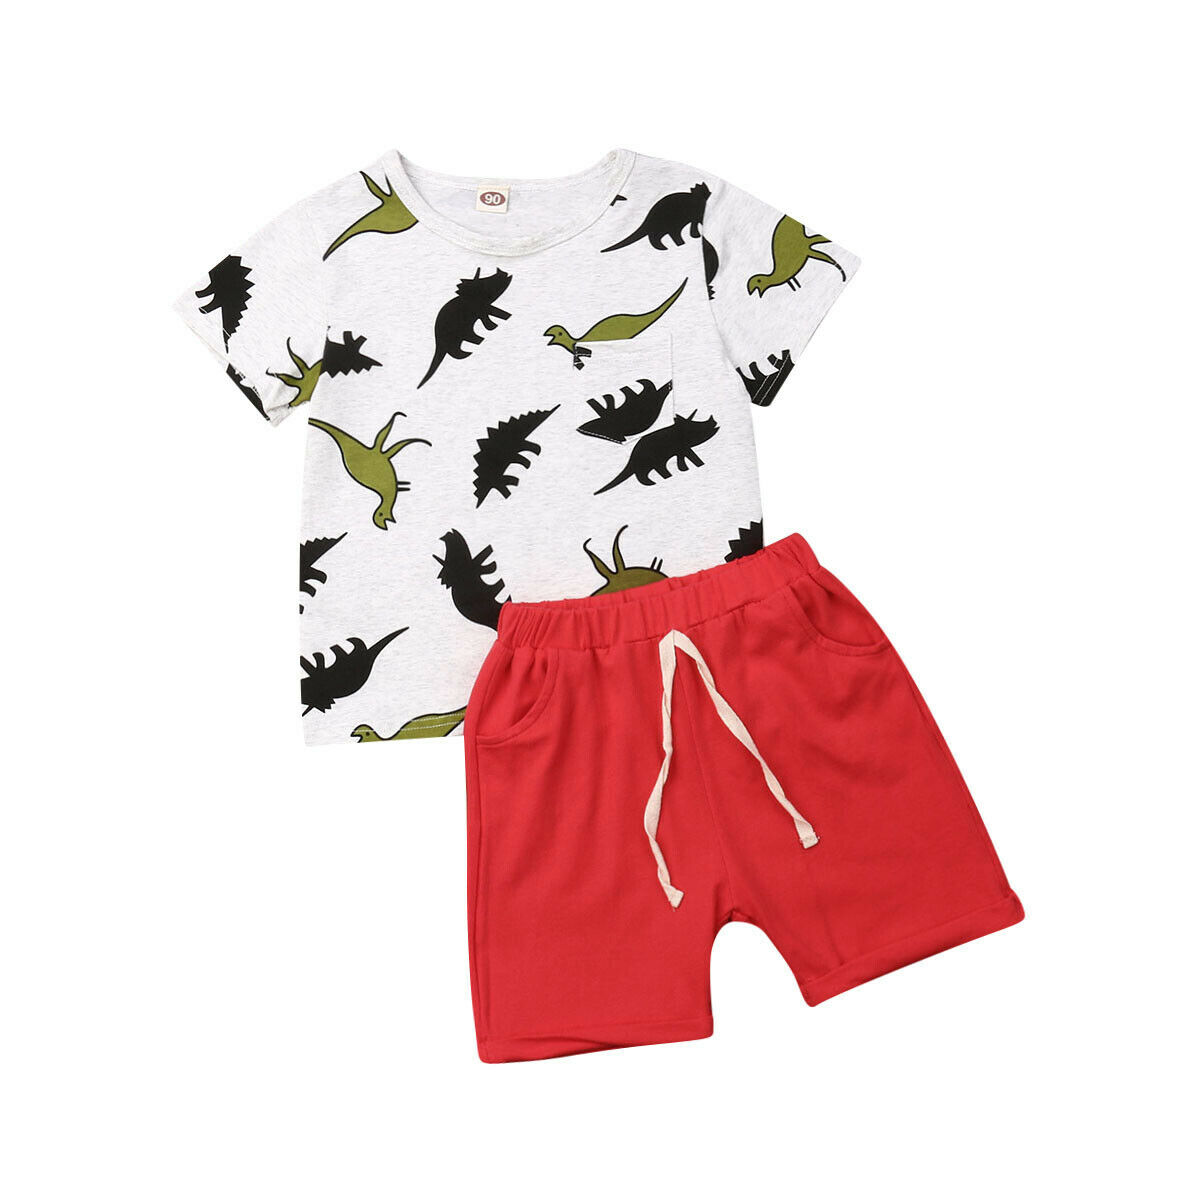 Boy Outfits T-Shirt Clothing Shorts Cotton-Sets Dinosaur Baby-Boy Kids Summer Casual